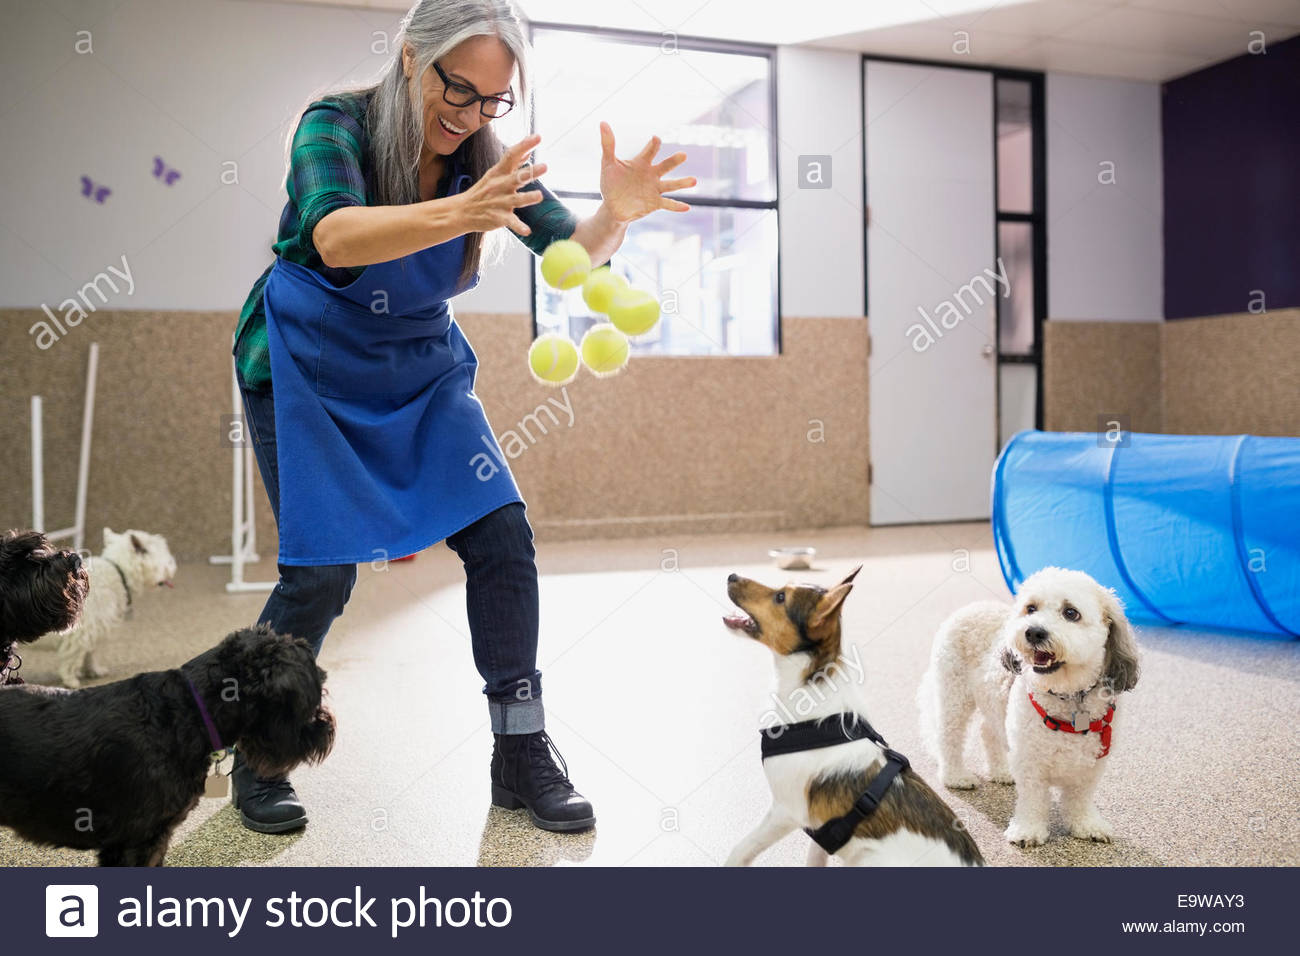 Dog daycare owner throwing tennis balls to dogs - Stock Image